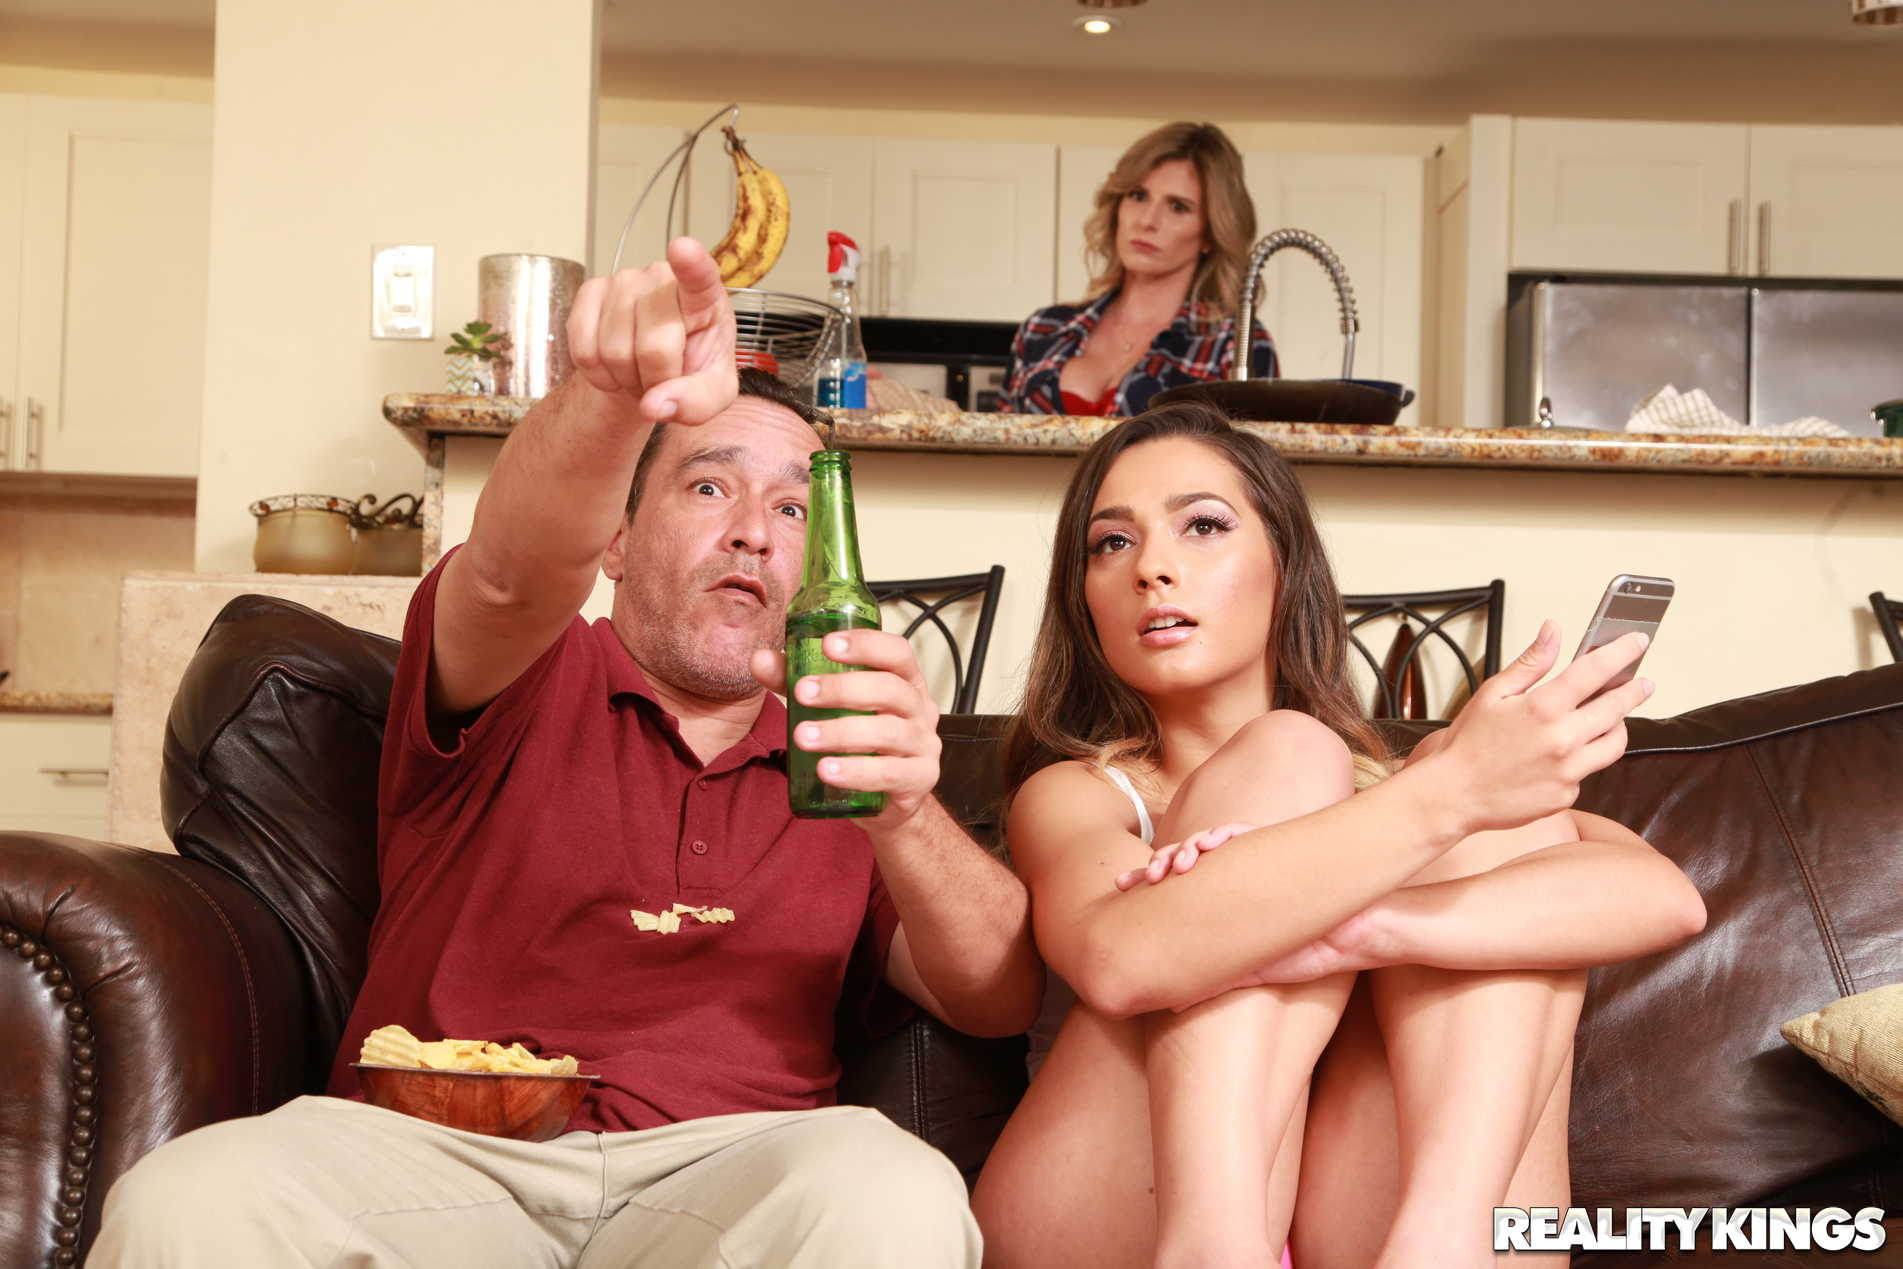 Reality Kings 'Get Off Your Ass And Clean' starring Cory Chase (Photo 77)